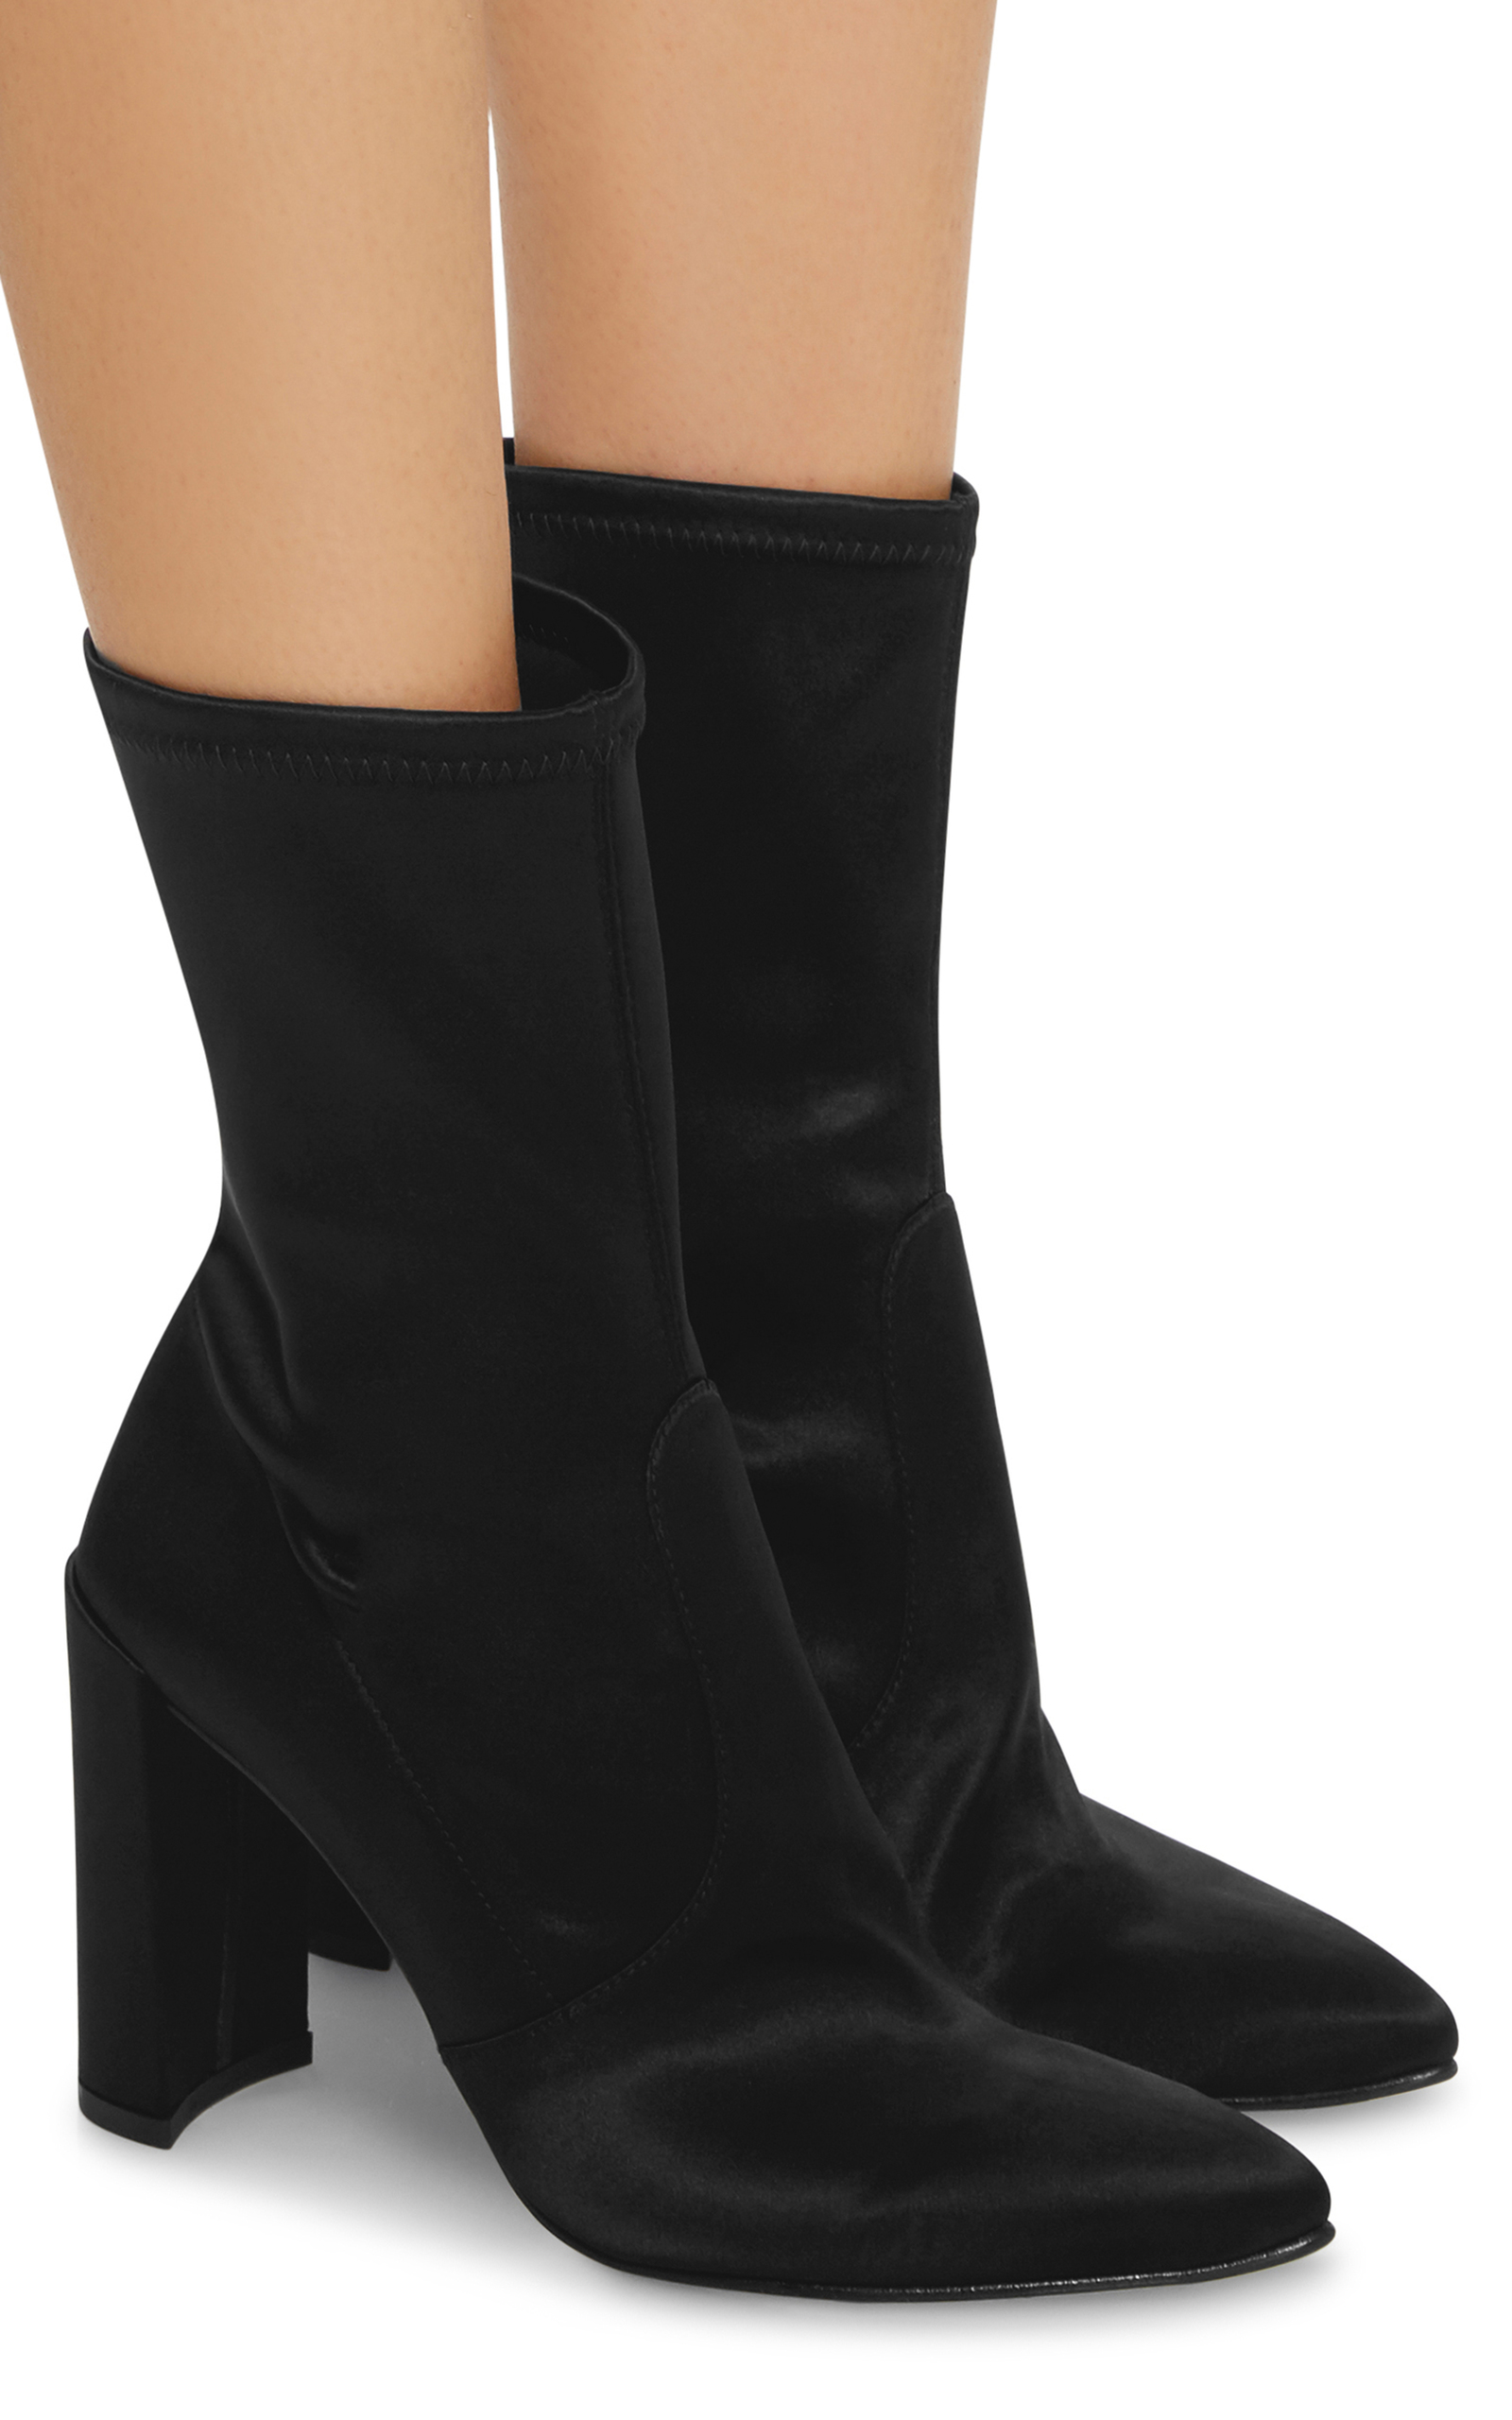 Stuart Weitzman Satin Ankle Boots discount clearance store explore for sale d5GZm